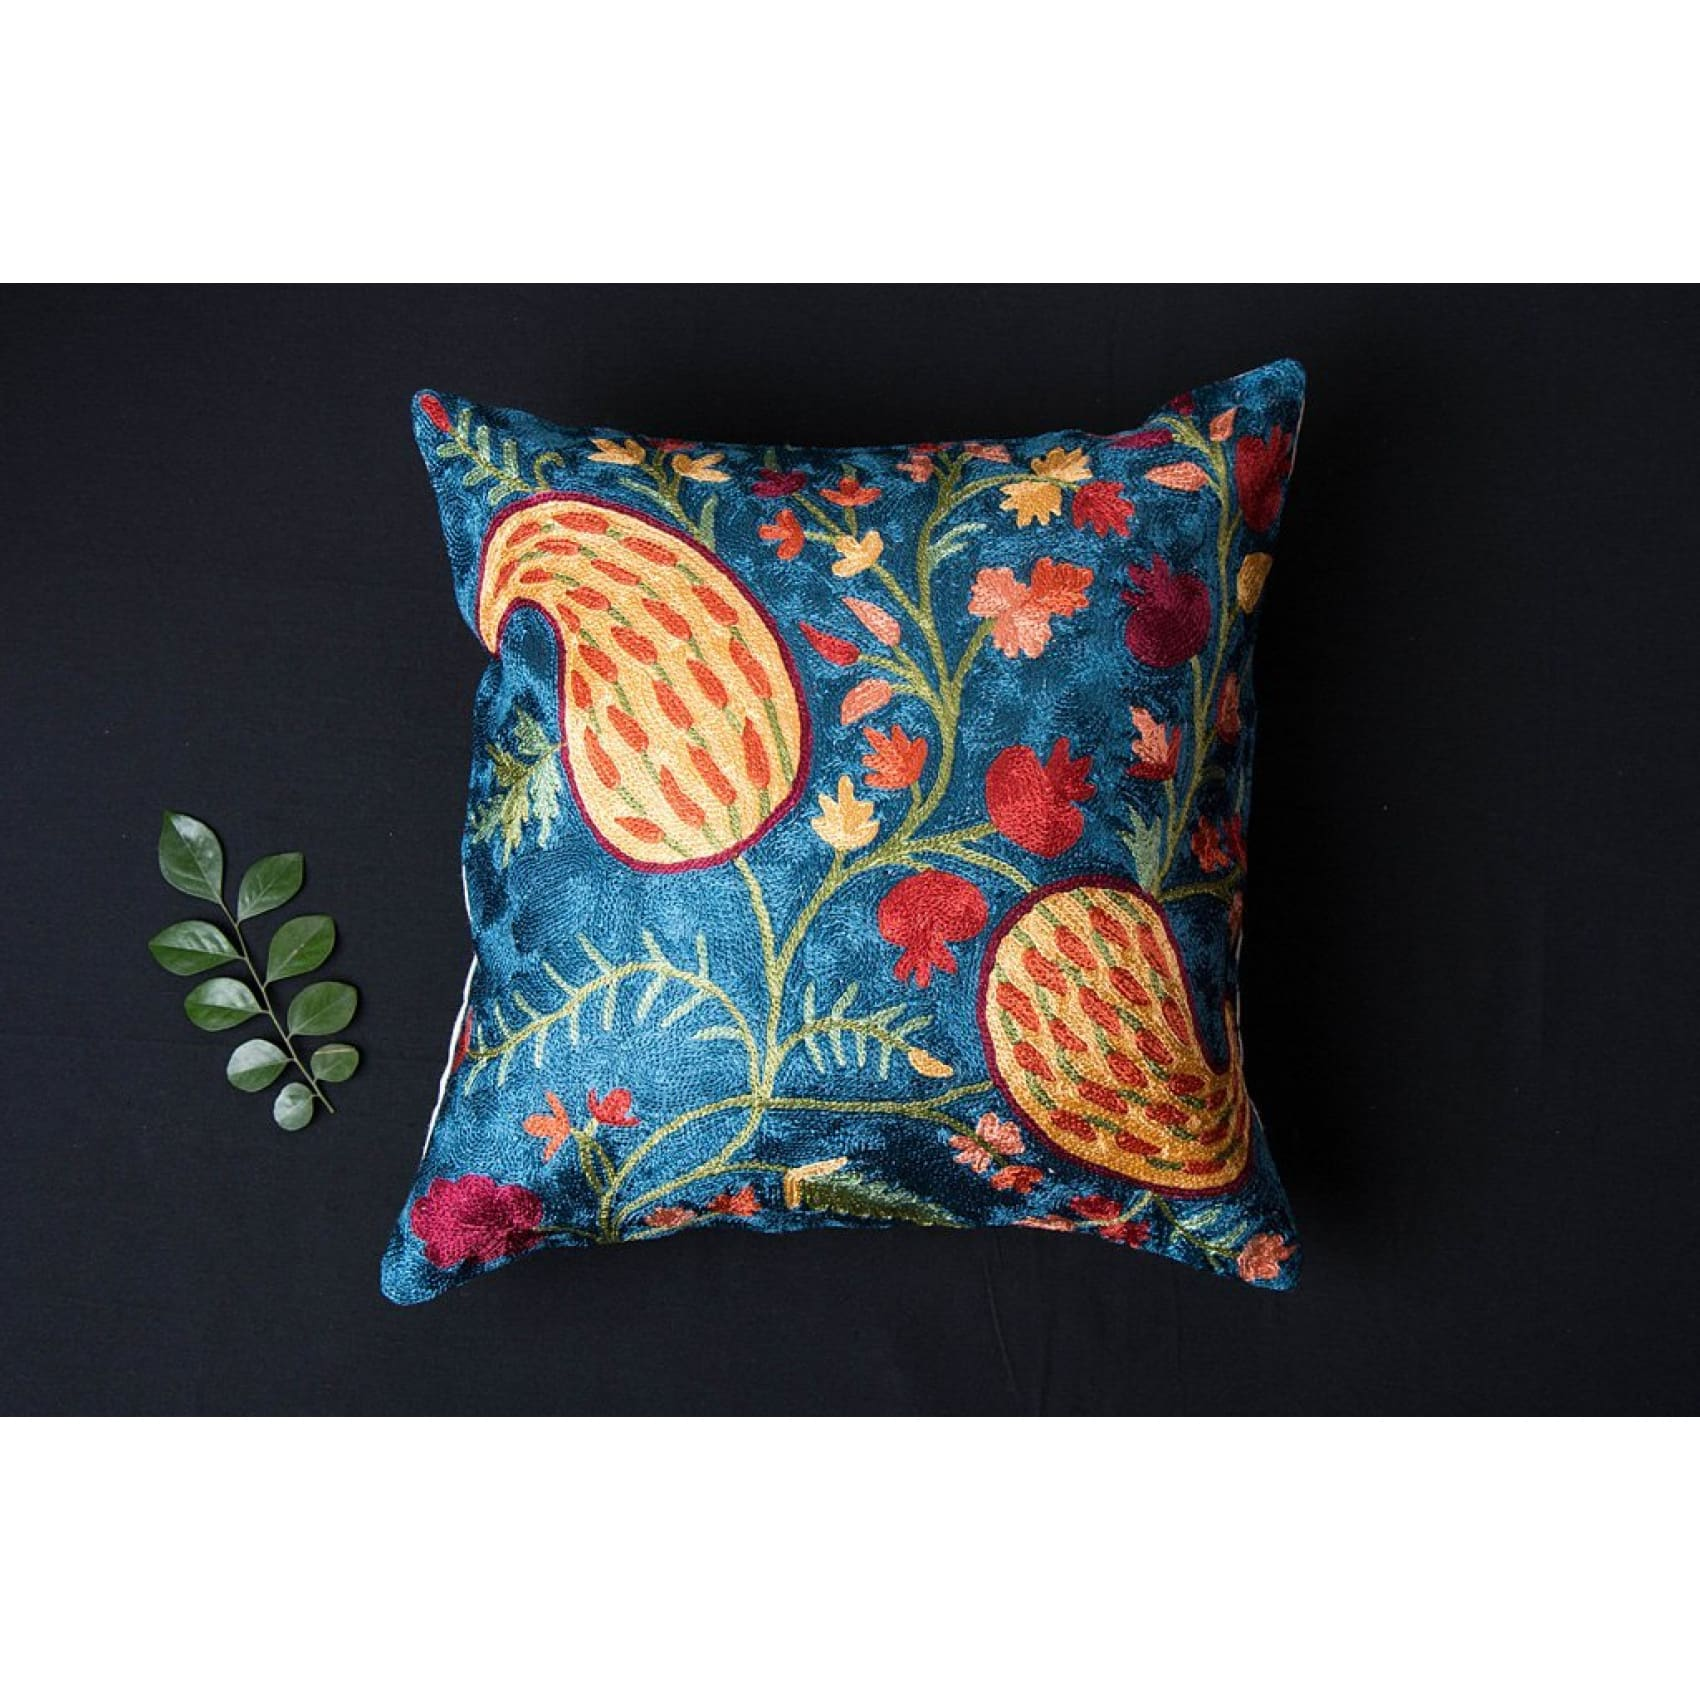 Hand Embroidered Silk Pillow